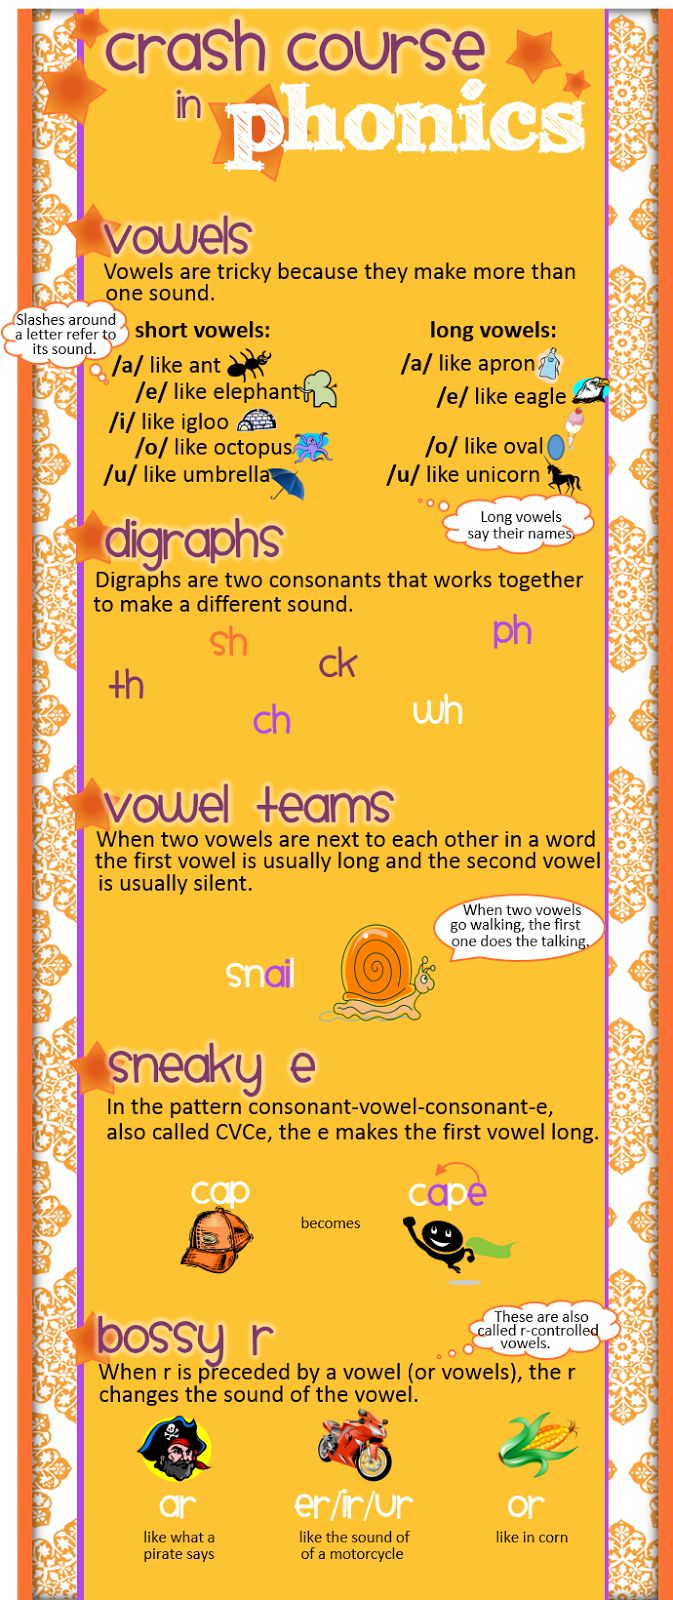 crash course in phonics, fill in the gaps left by your teacher-prep program